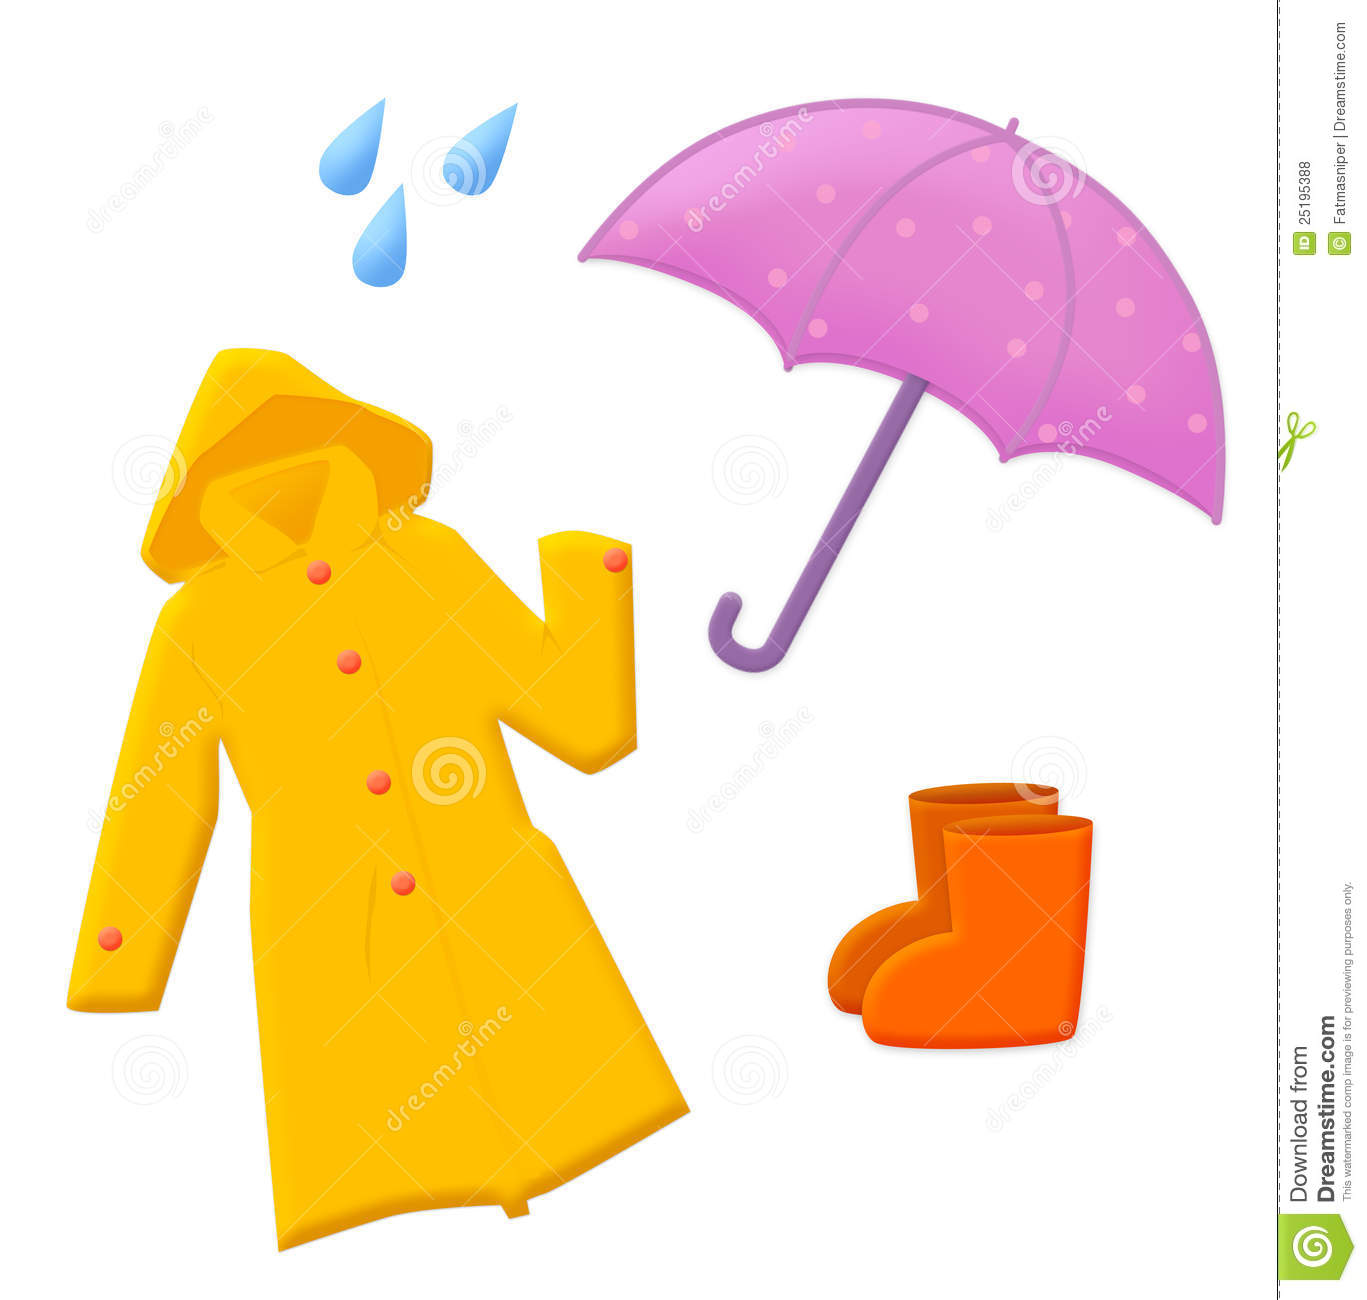 Weather Images For Kids